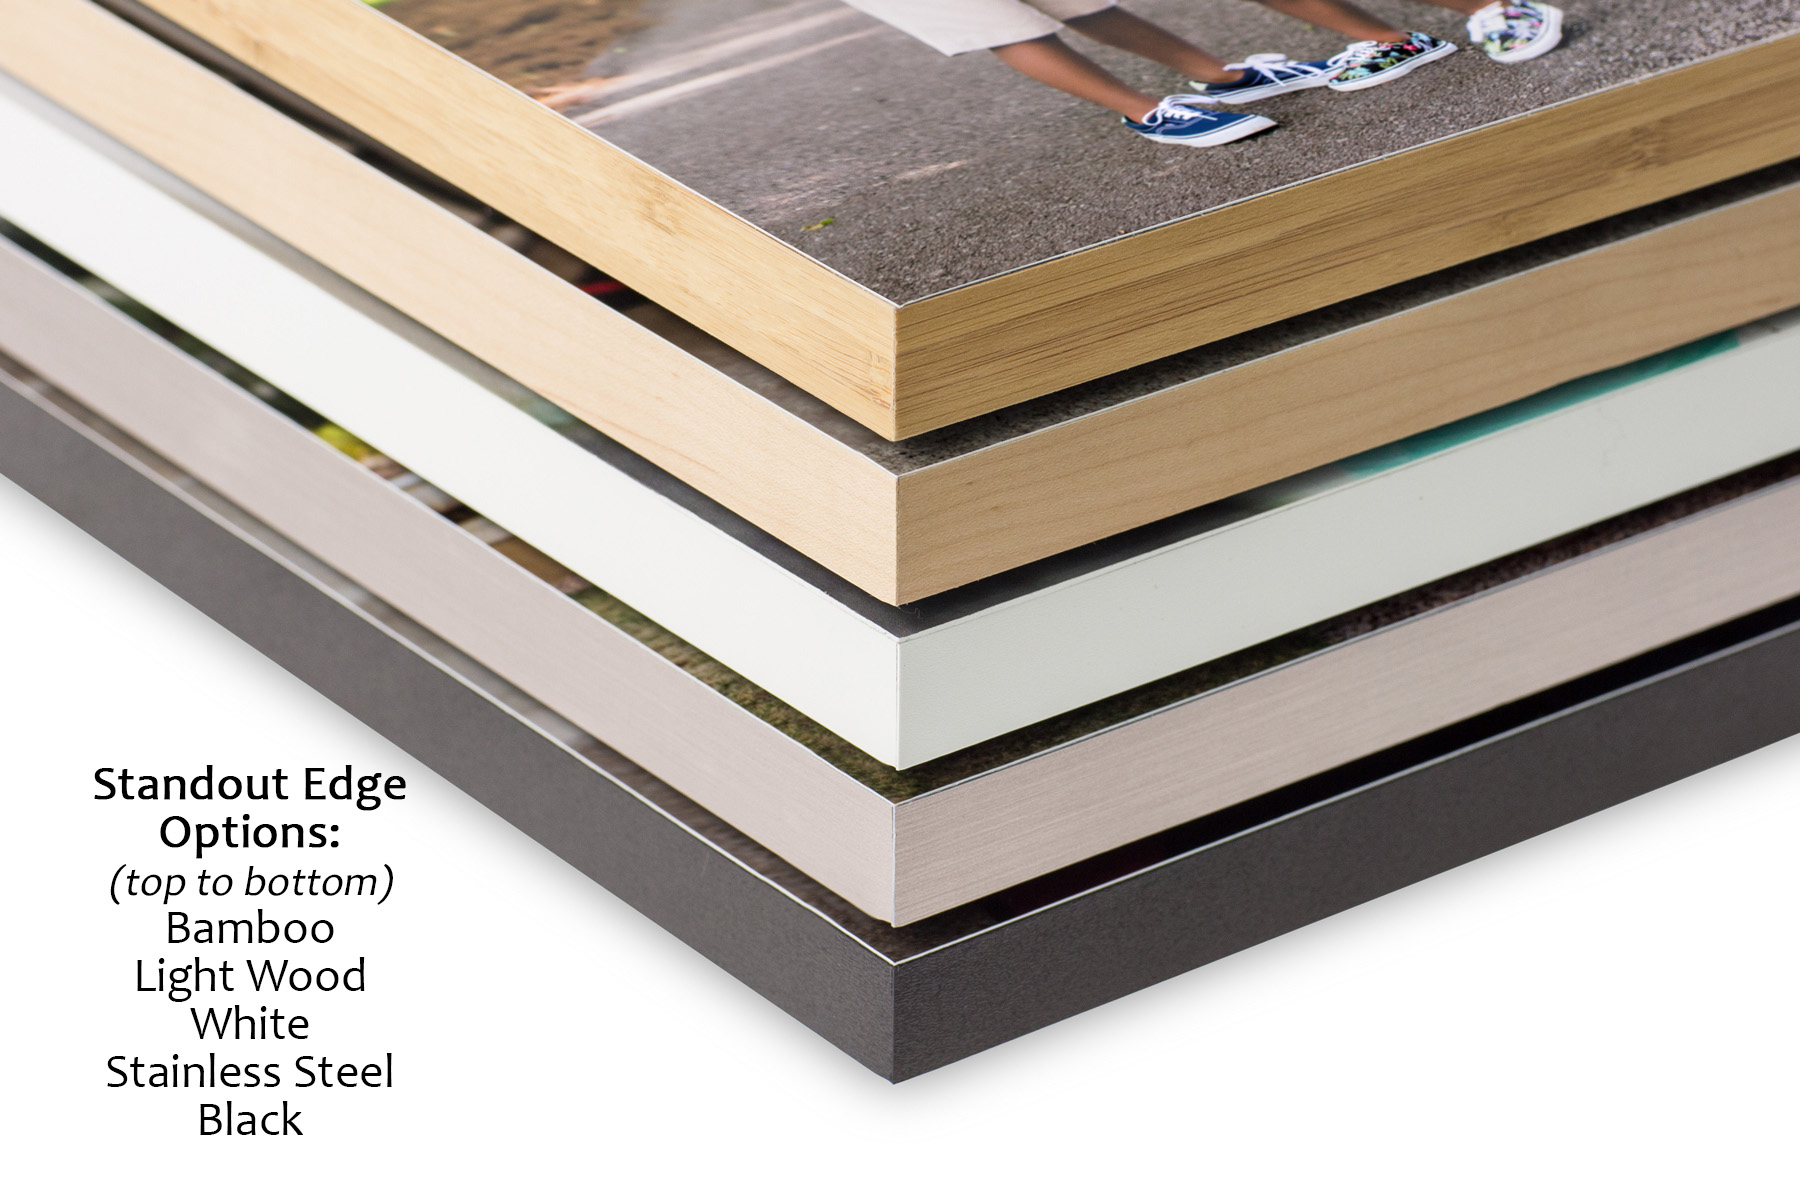 products_large_standout_edging_styles